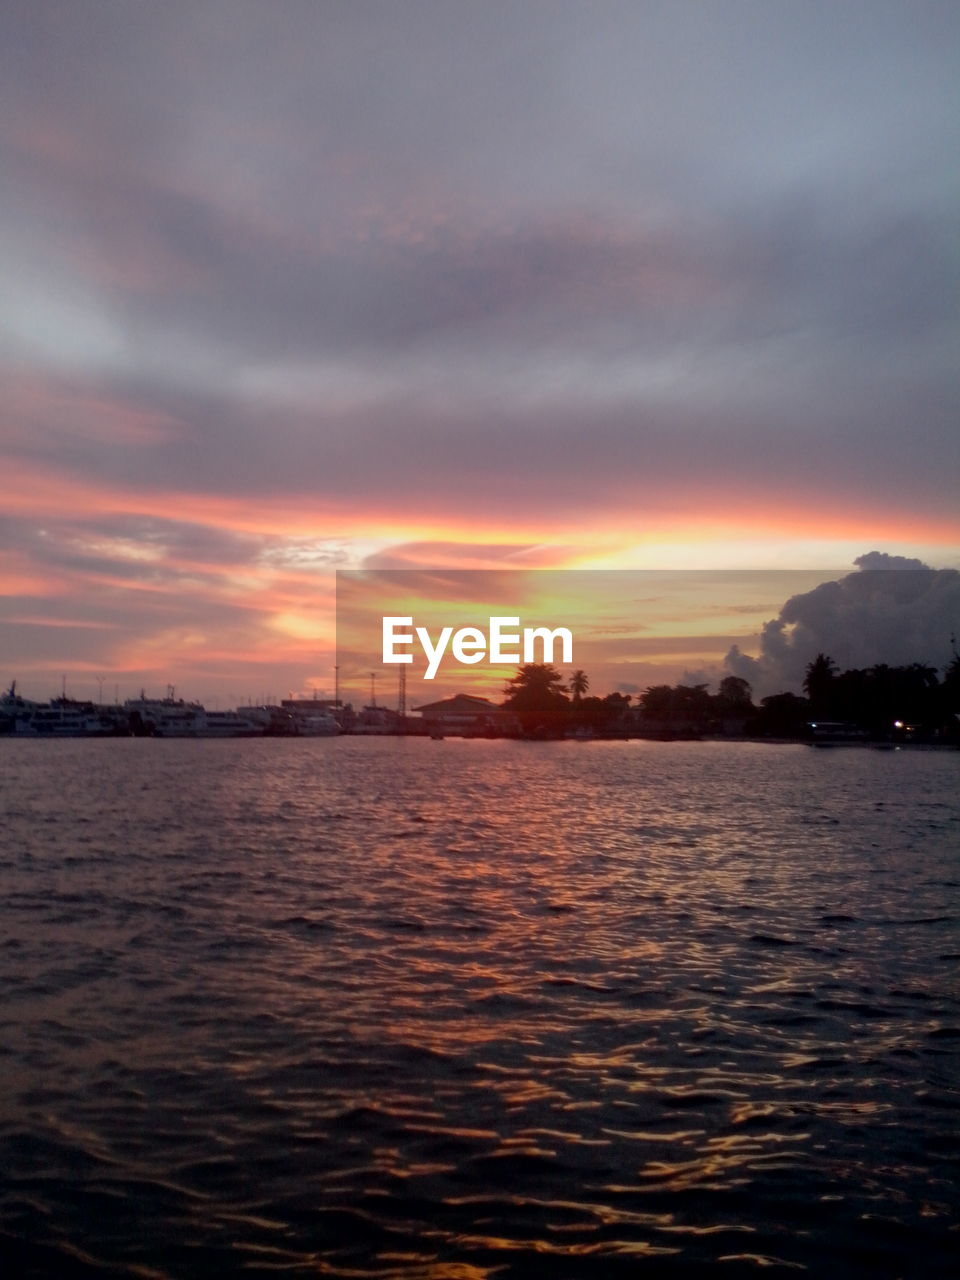 sunset, sky, cloud - sky, no people, nature, beauty in nature, scenics, waterfront, silhouette, water, tranquility, tranquil scene, outdoors, architecture, day